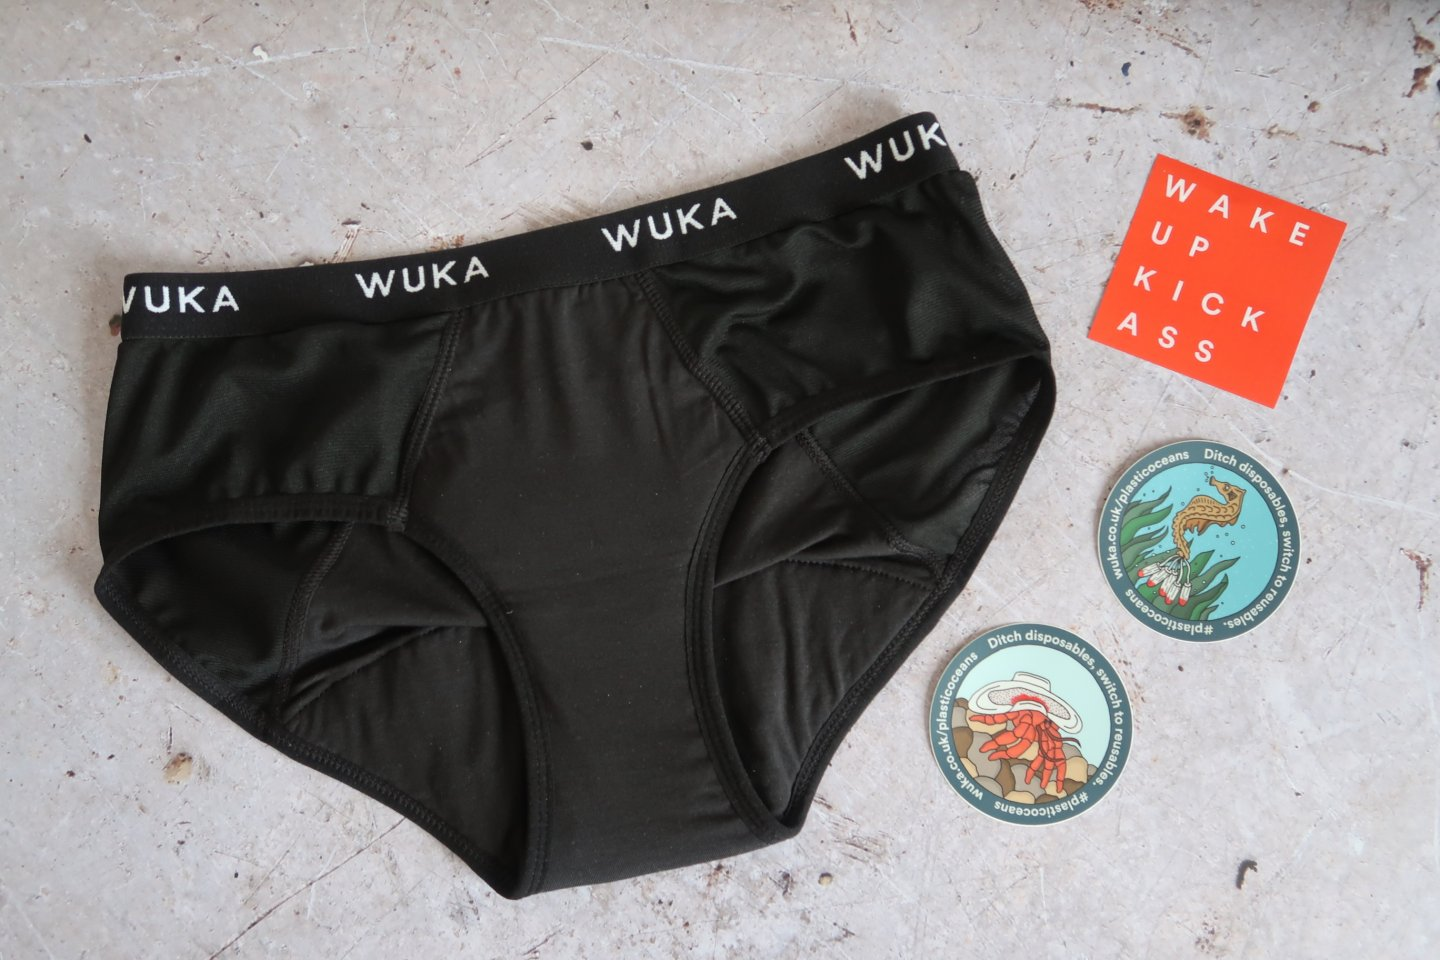 Wuka period pants review.